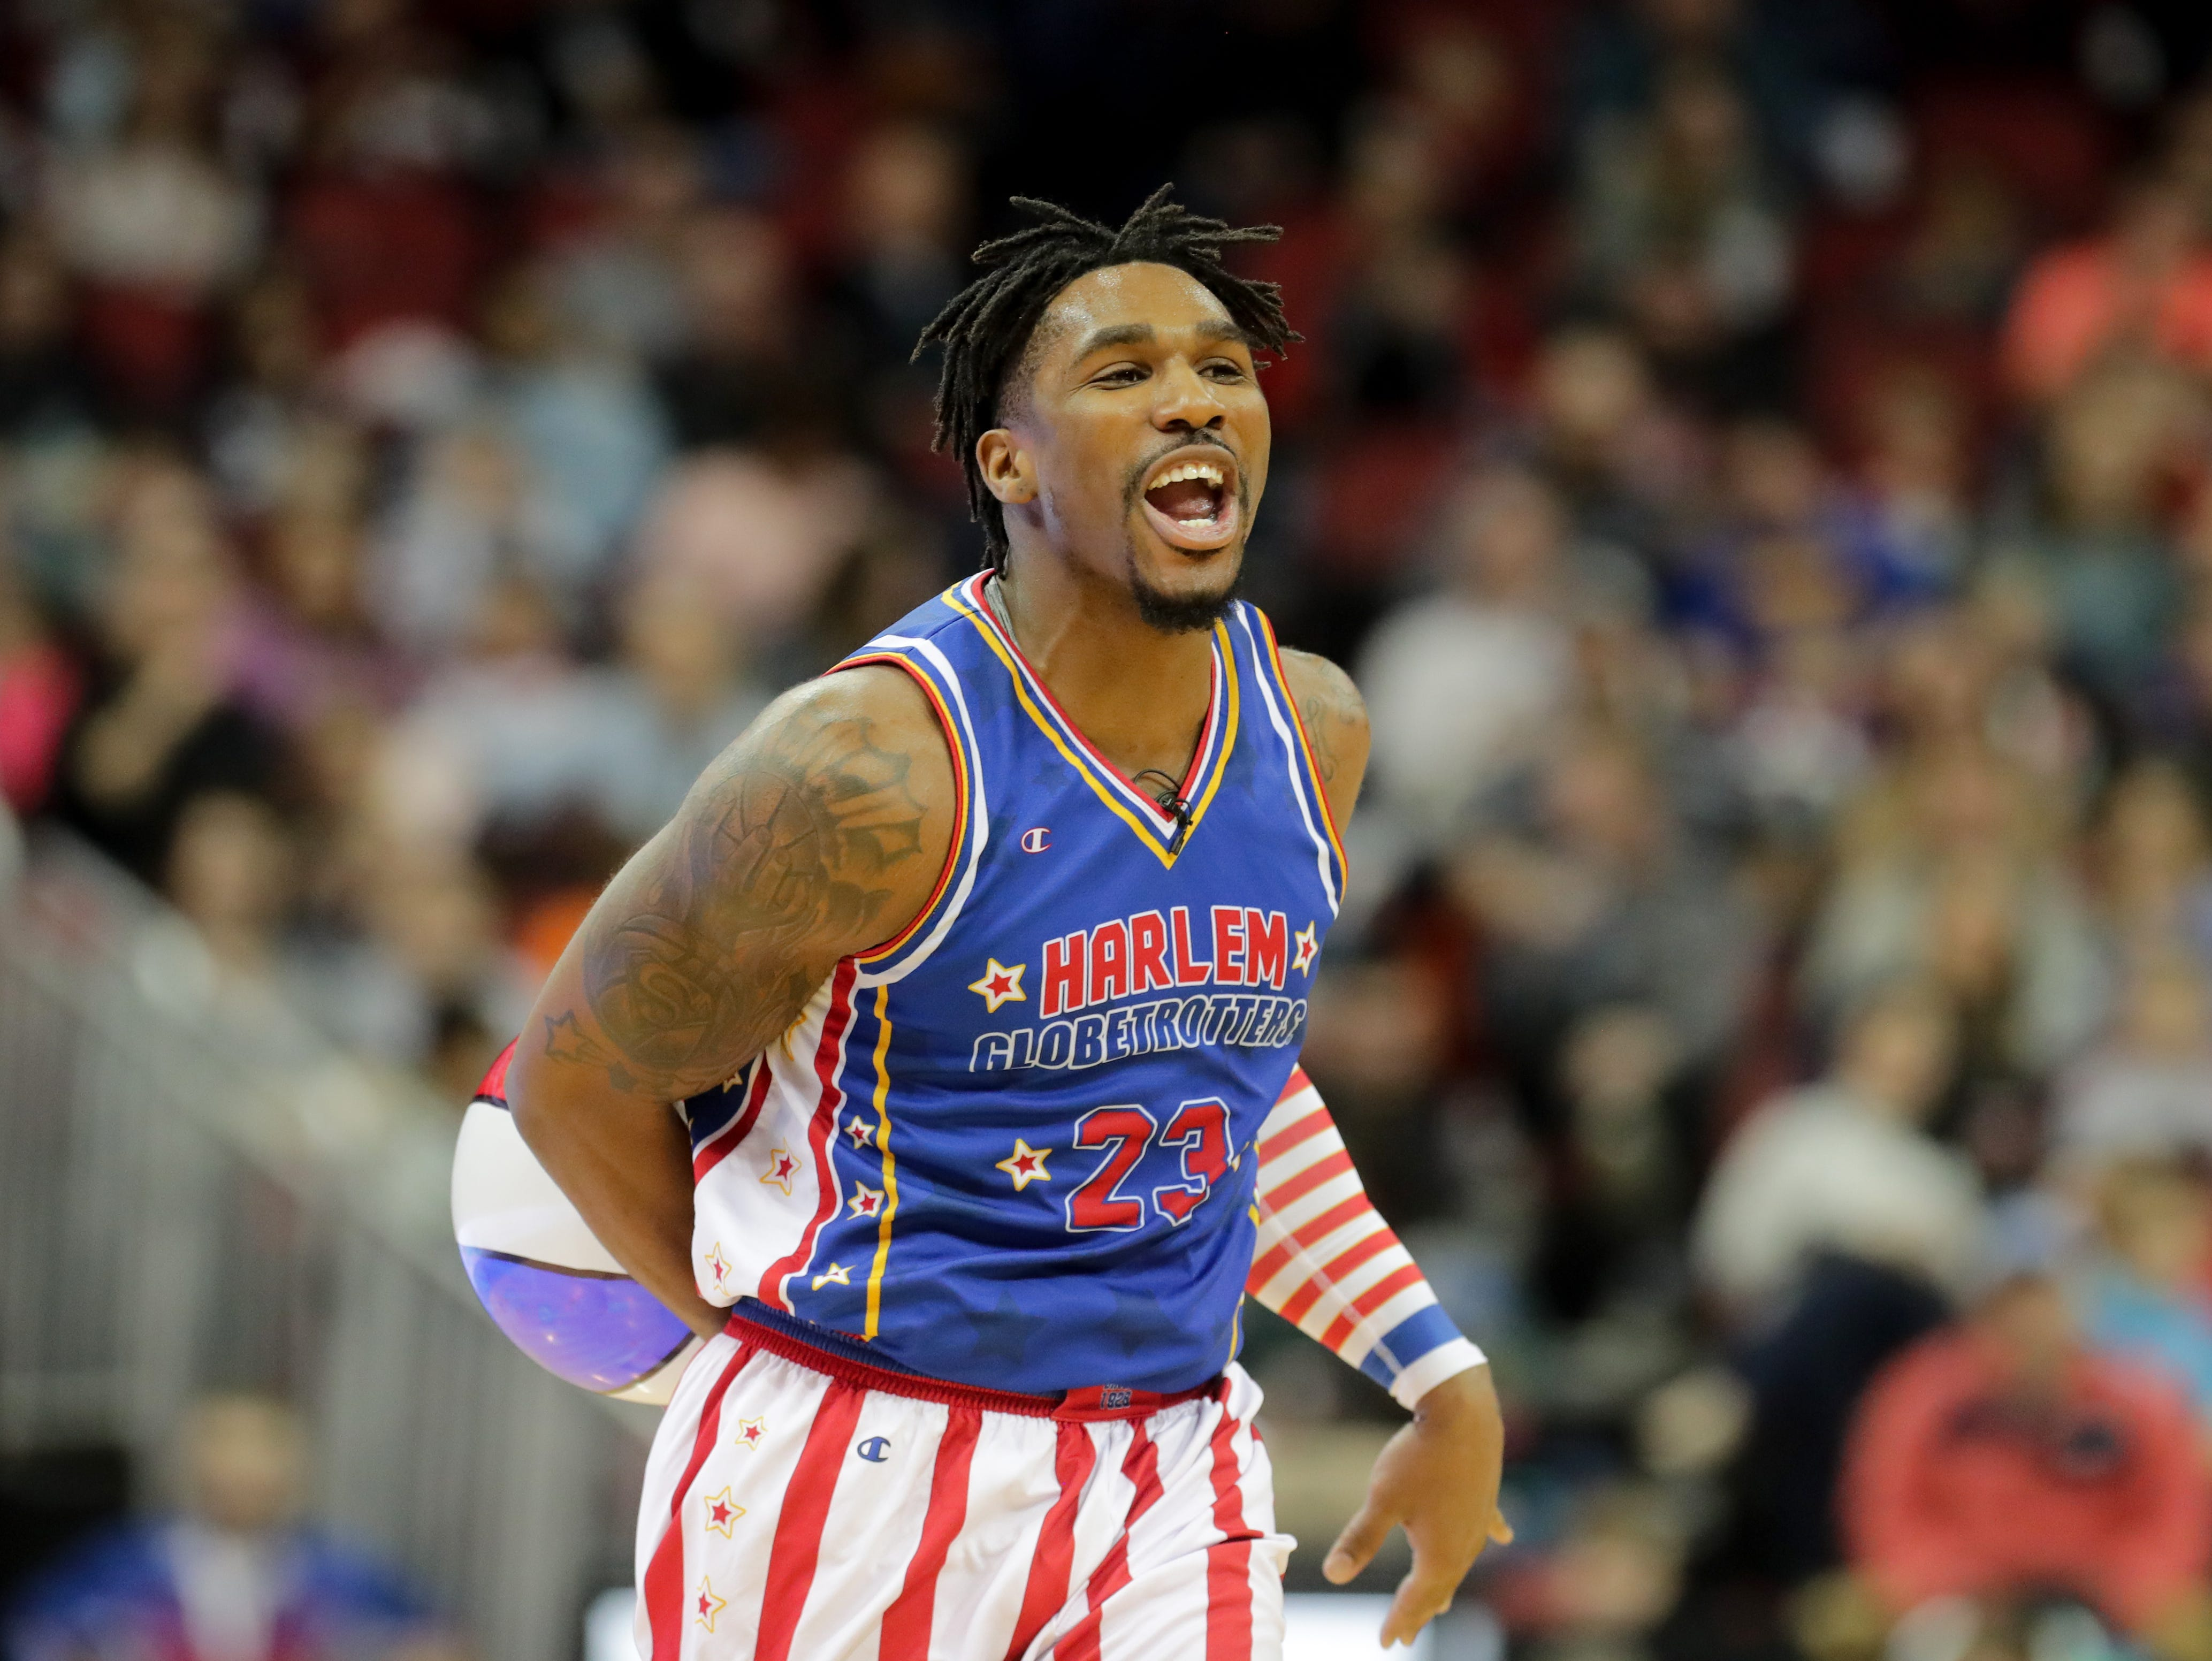 Harlem Globetrotters' Thunder brings a new ball out for the Generals. Jan. 19, 2019